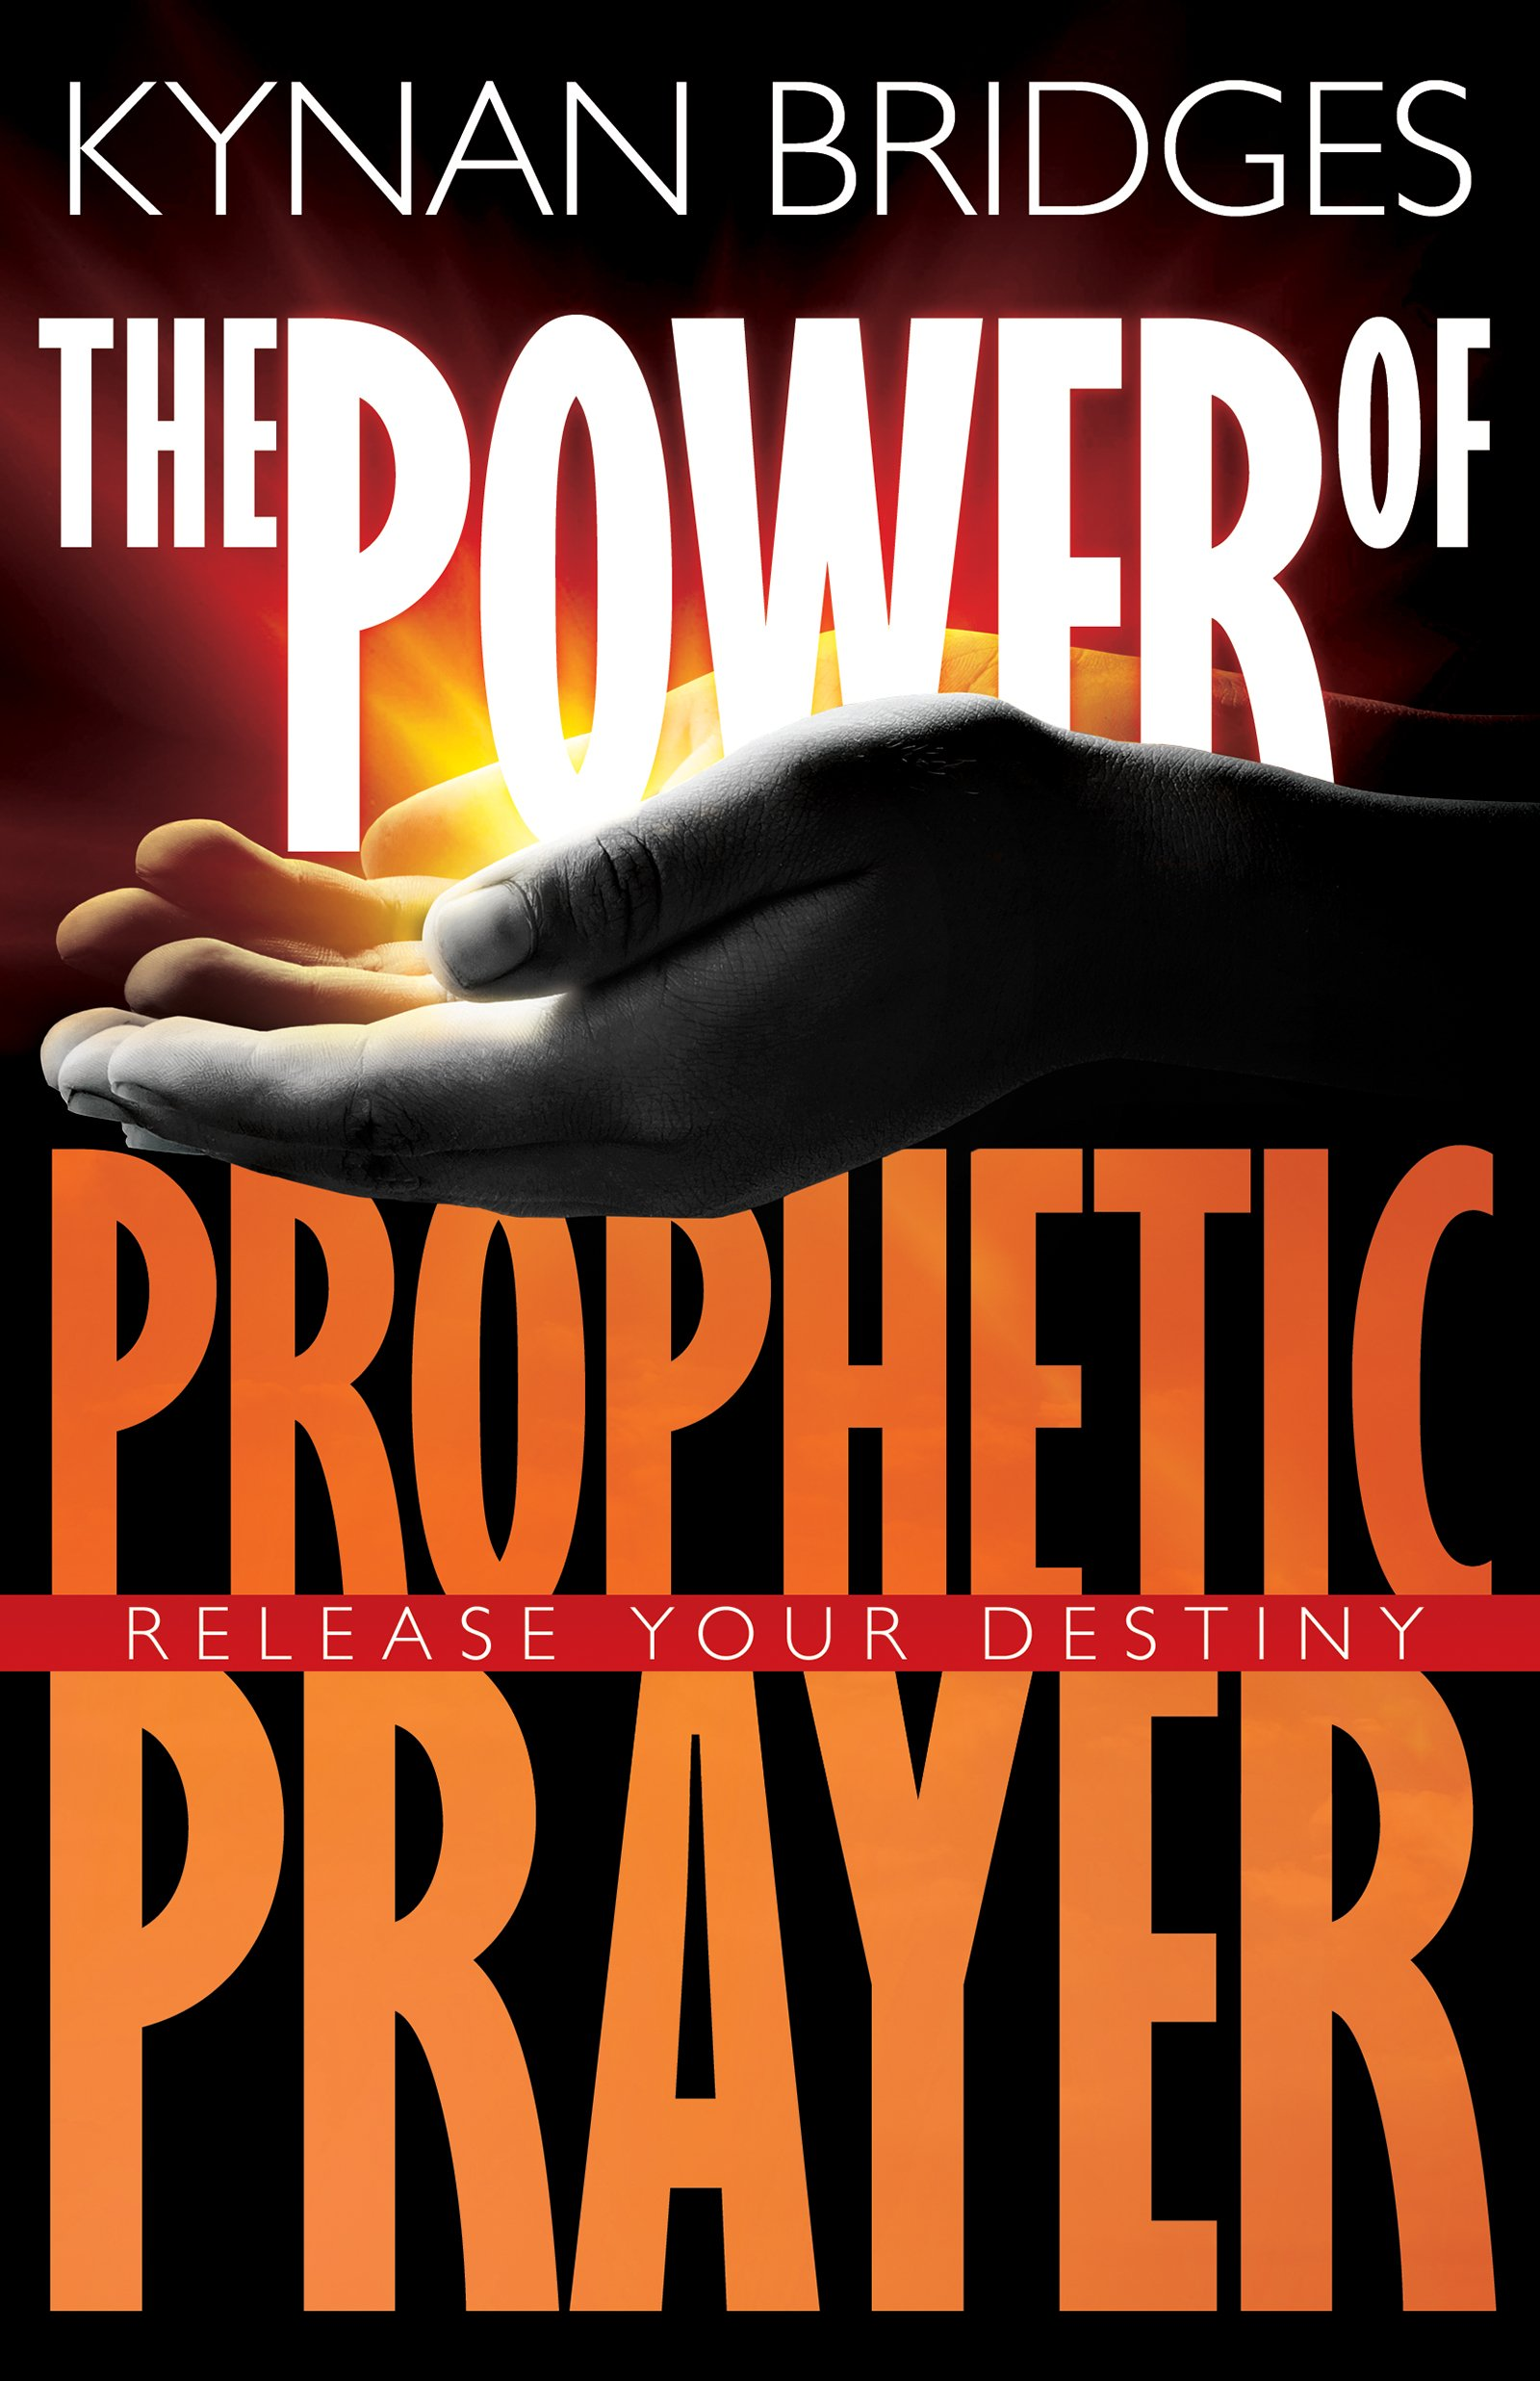 Amazon.com: The Power of Prophetic Prayer: Release Your Destiny  (9781629116228): Kynan Bridges, Jennifer LeClaire: Books